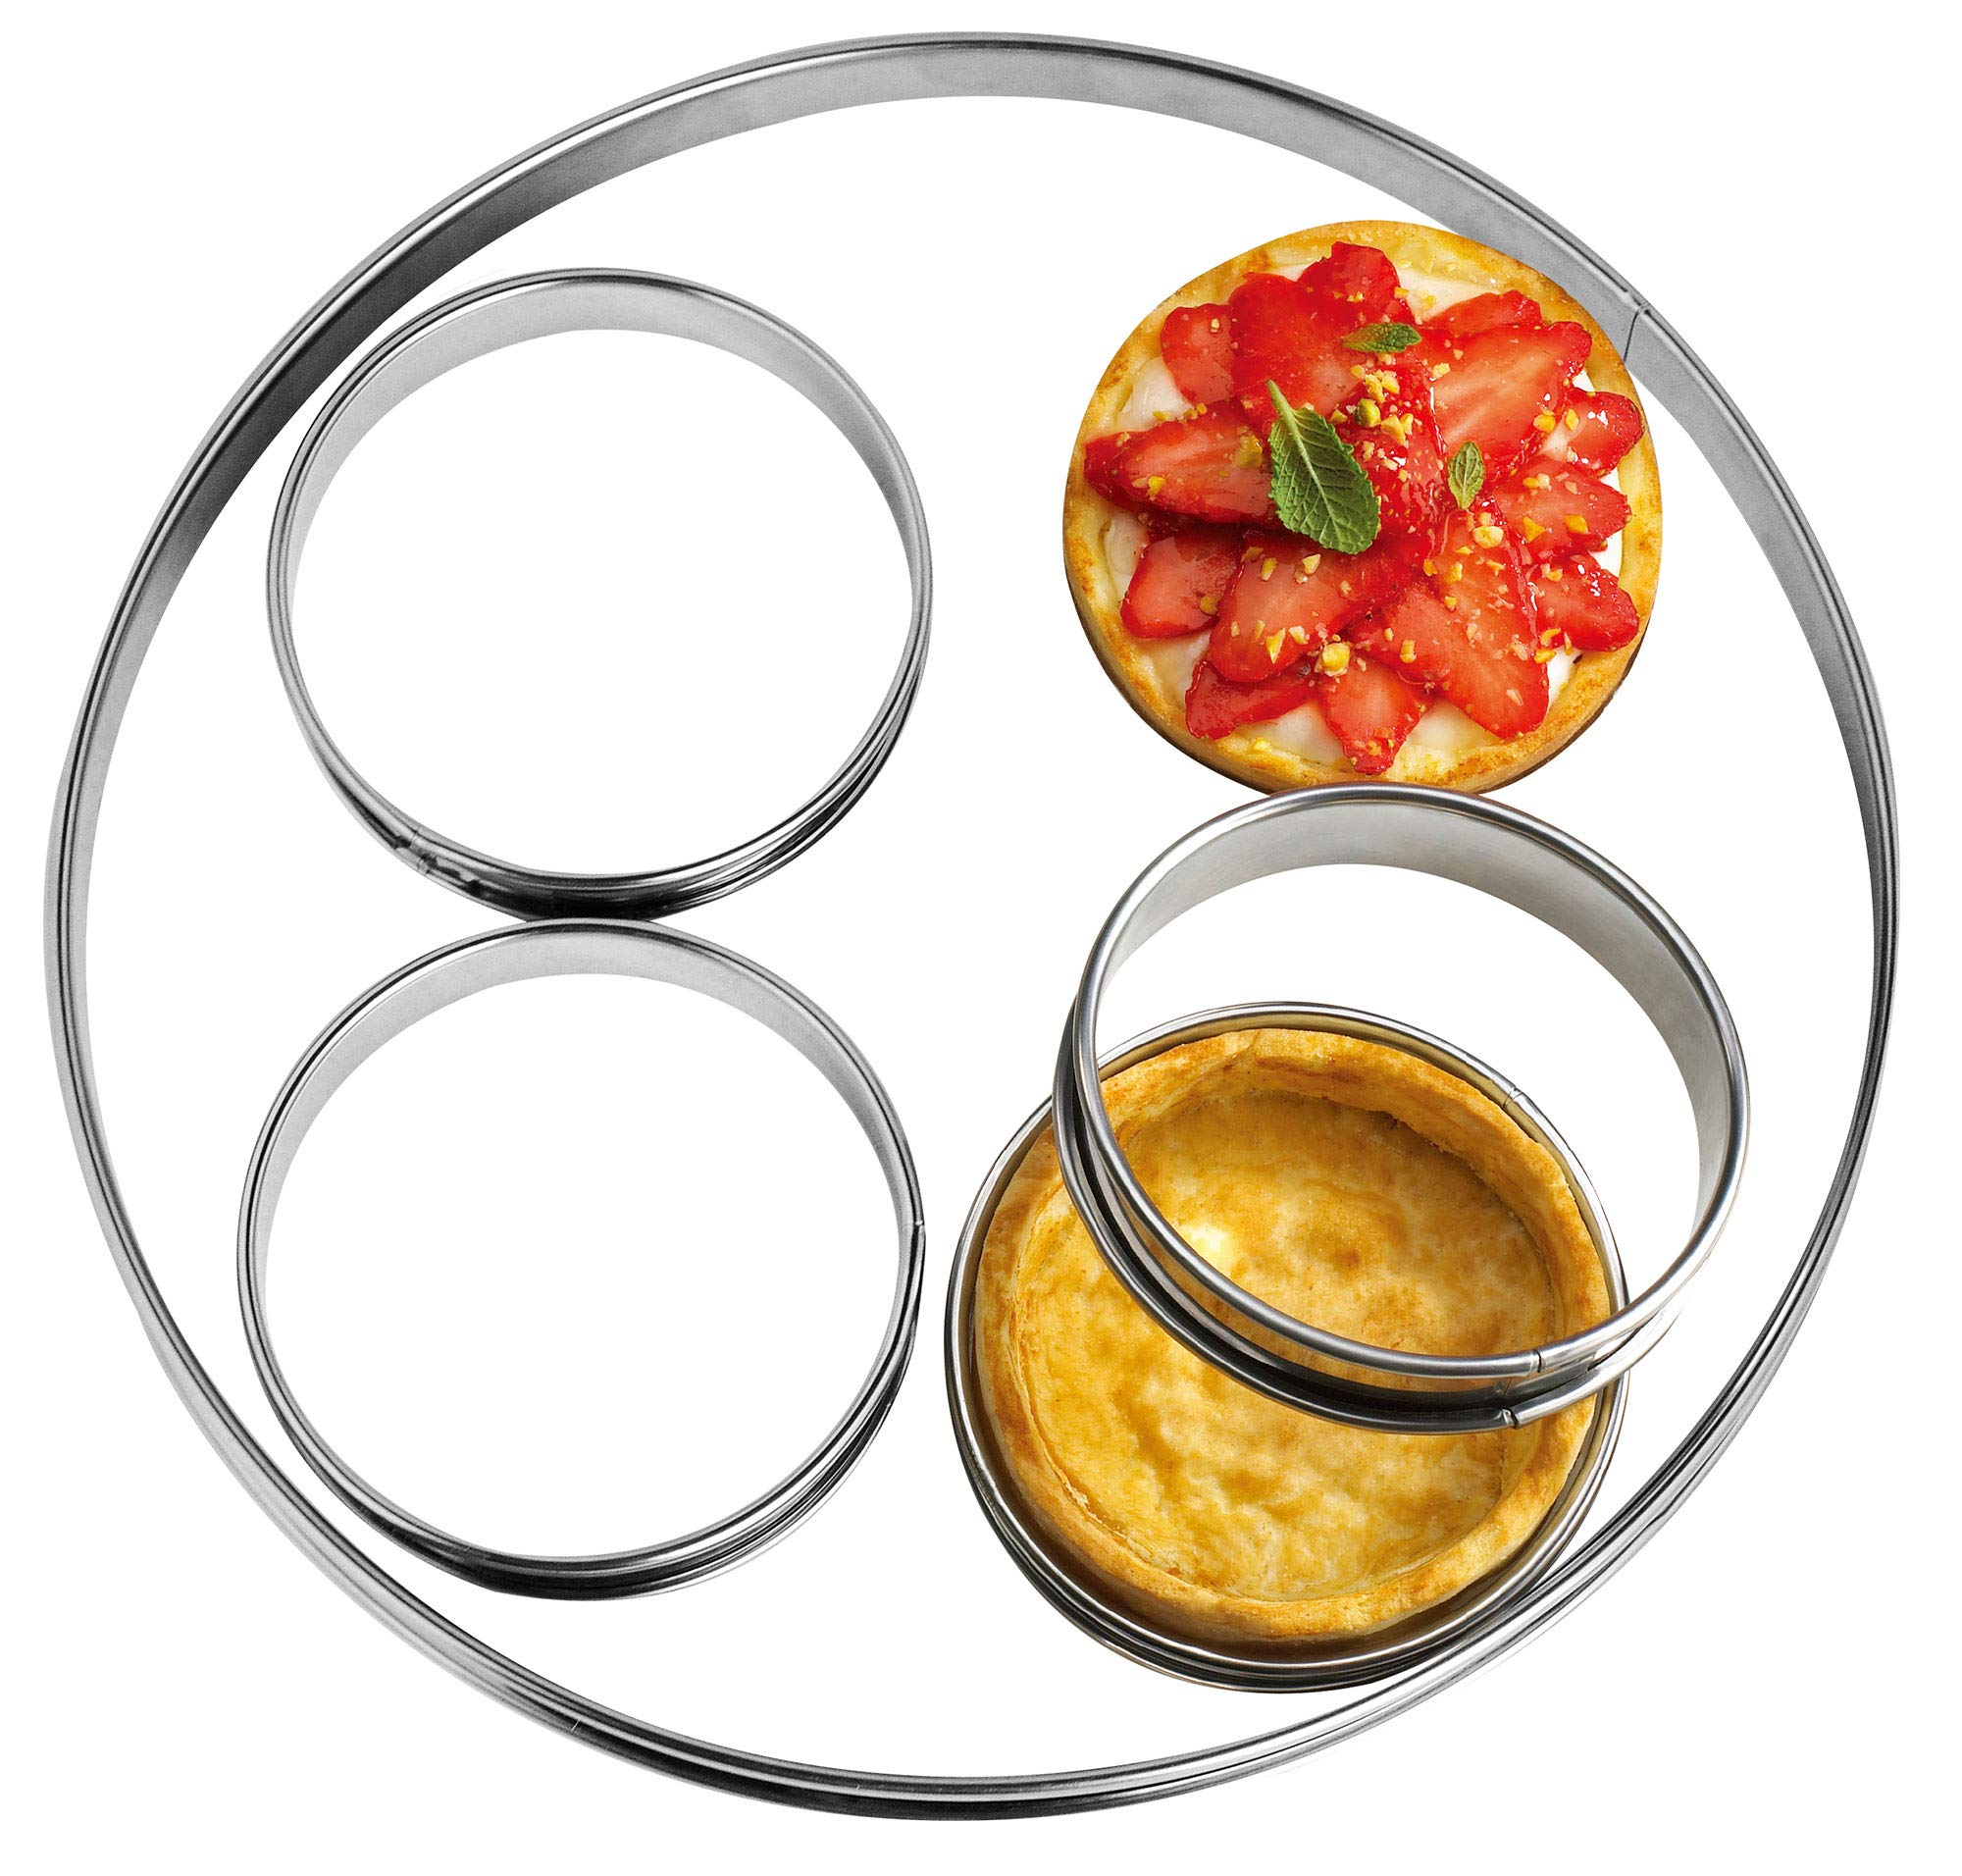 NewlineNY Stainless Steel 5 Pcs Circular Round Tart Rings, Molding, Plating, Set of 5 : 1 x (28cm 11'') + 4 x (10cm 4'') x (2.2cm 1'' H)